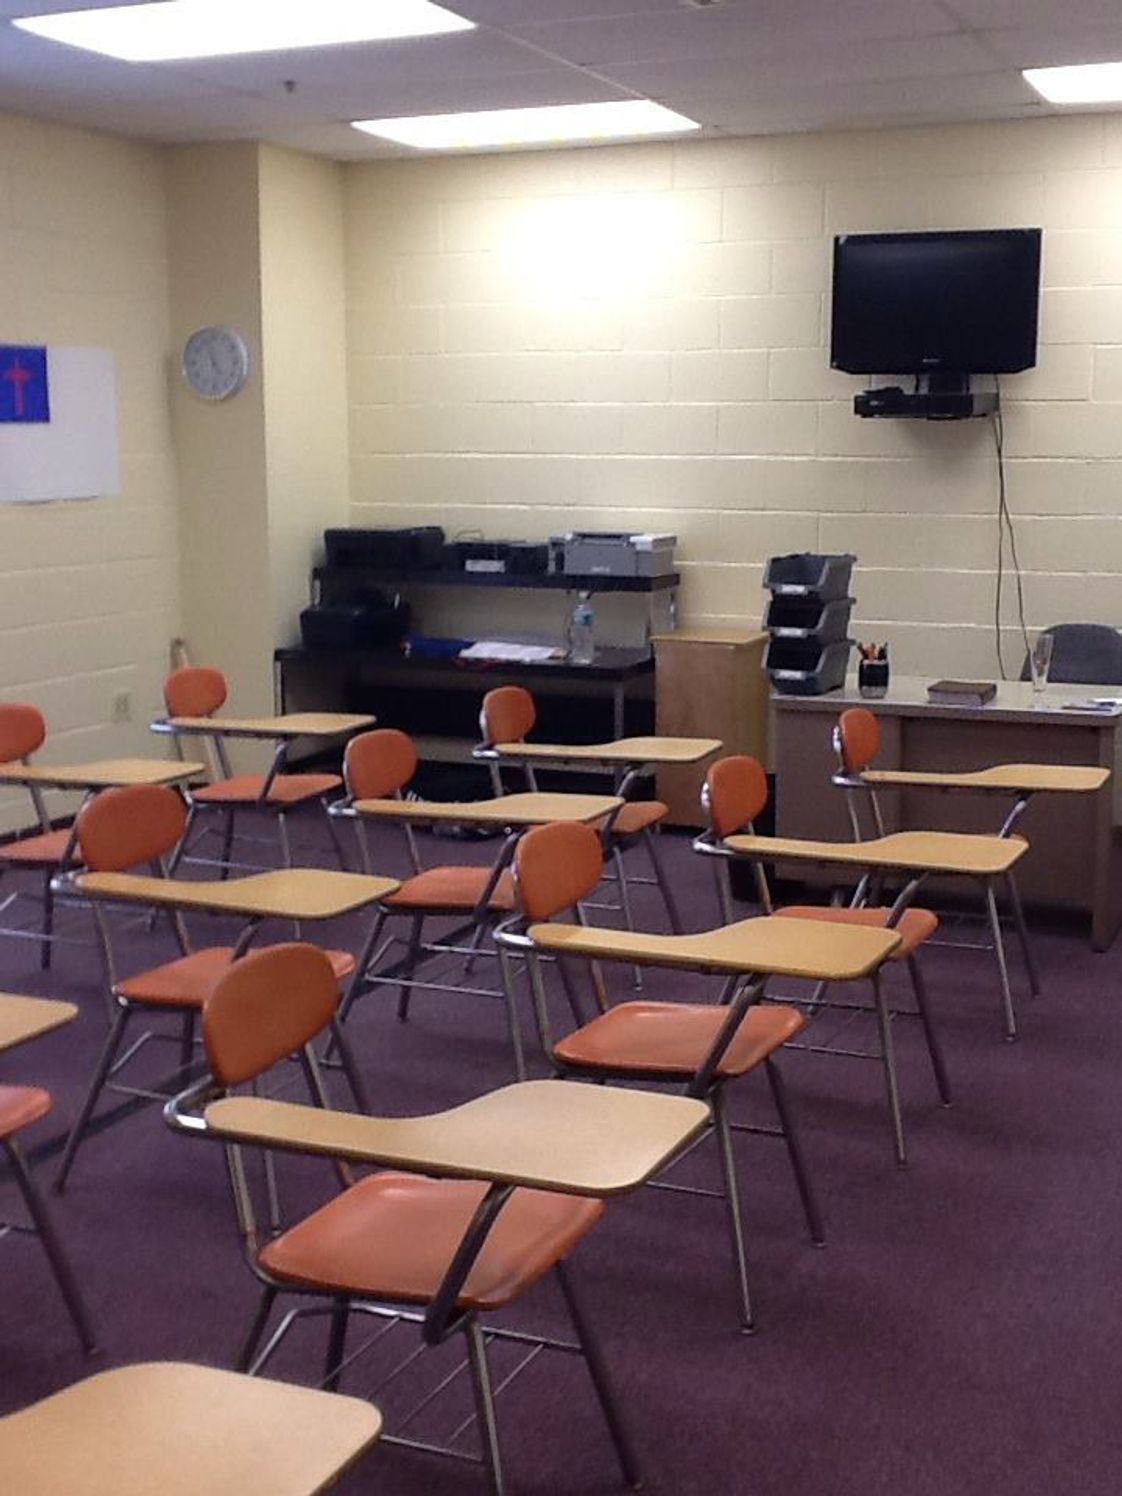 Beacon Christian Academy Photo #1 - Multipurpose Room for music, Spanish classes, music, art, technology and much more!